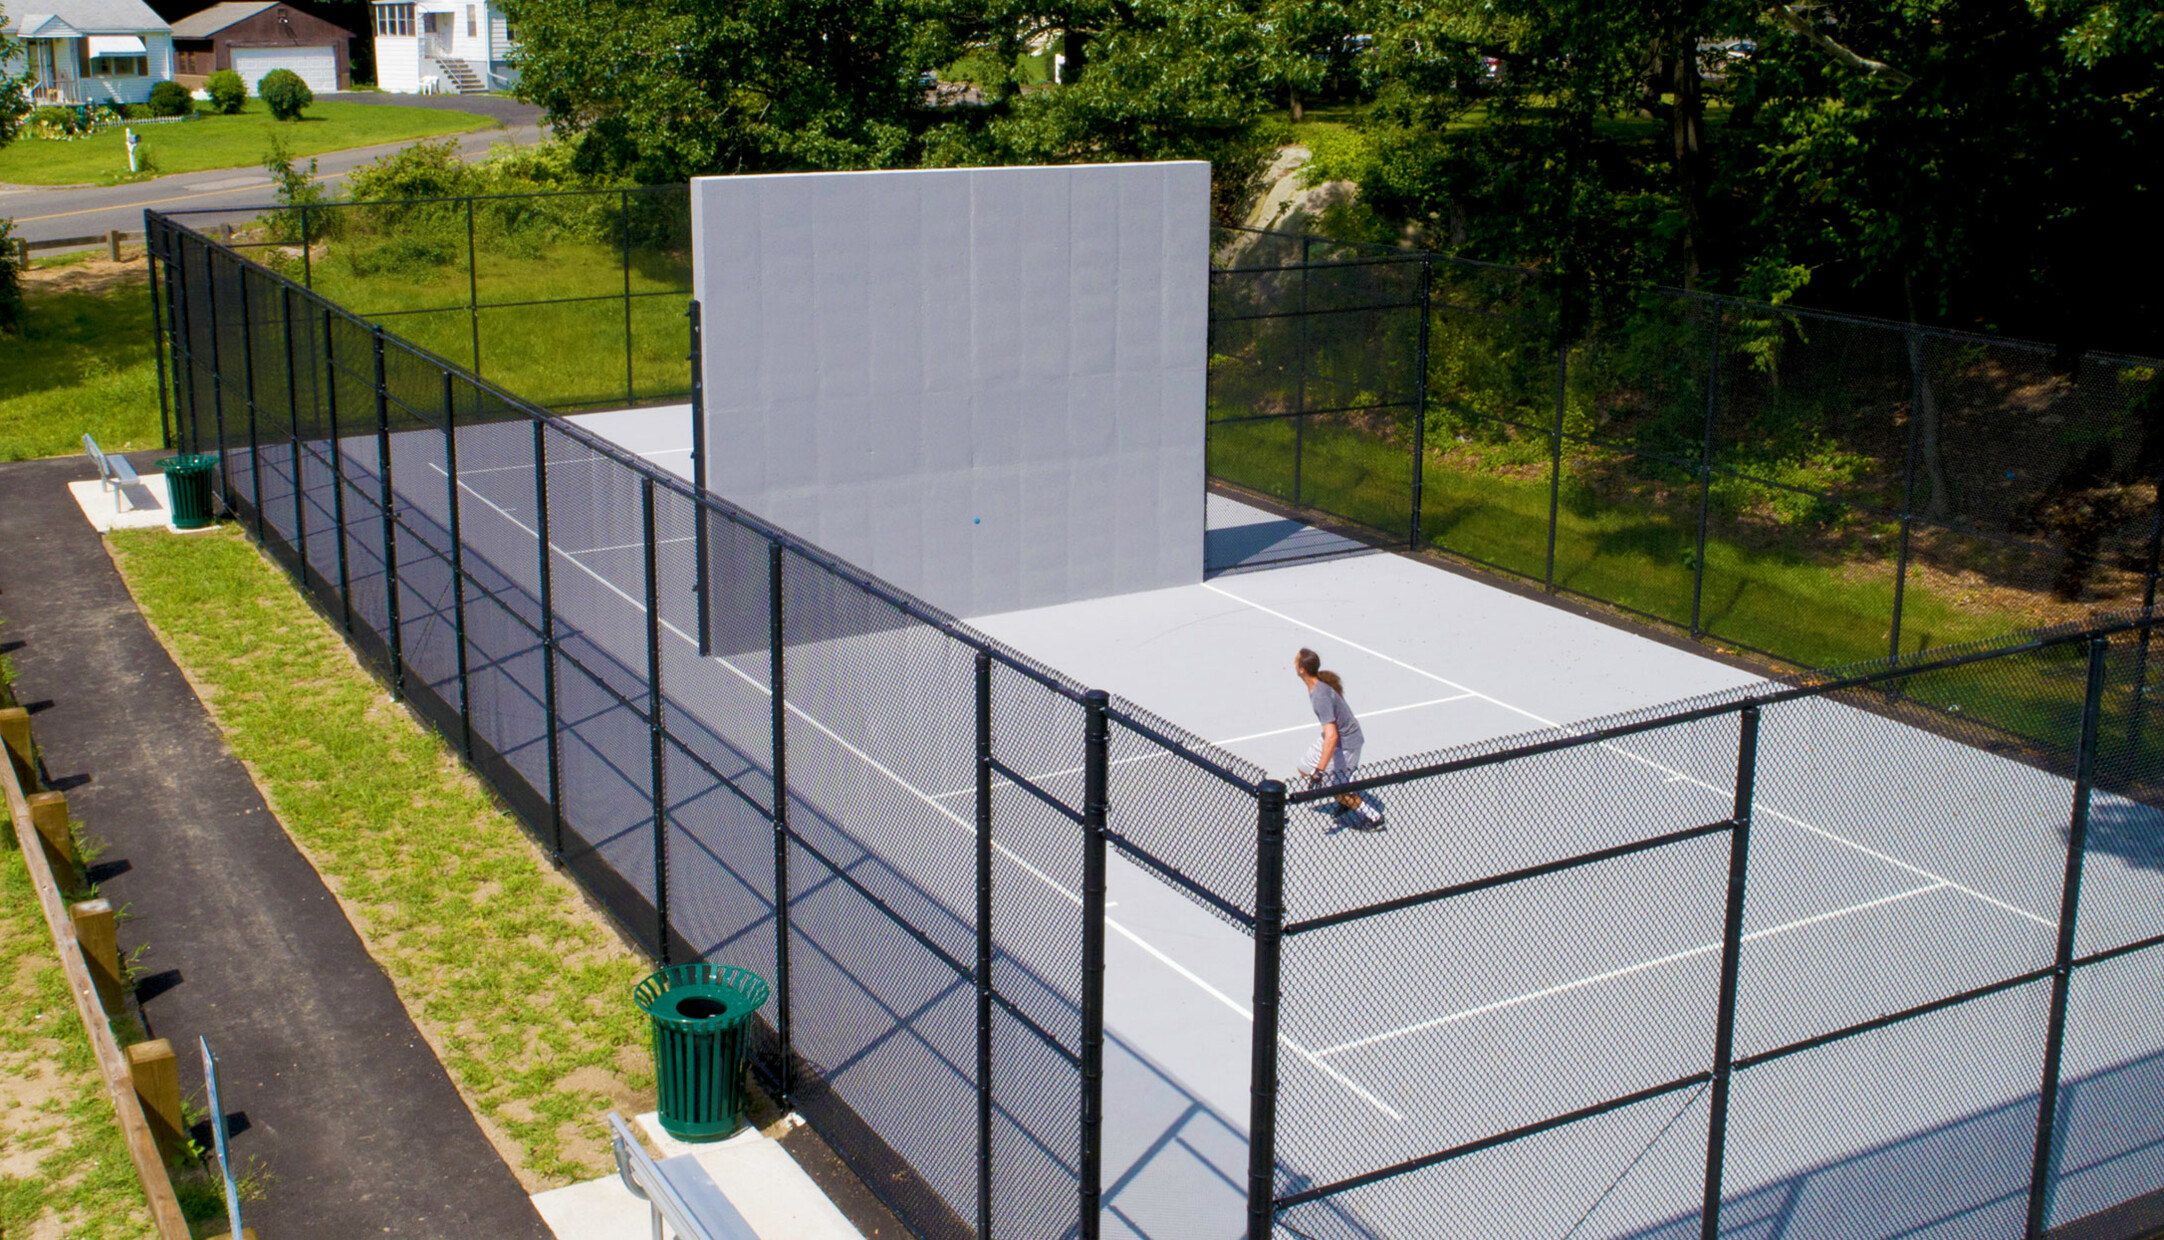 A handball court in the Lakewood neighborhood of Waterbury